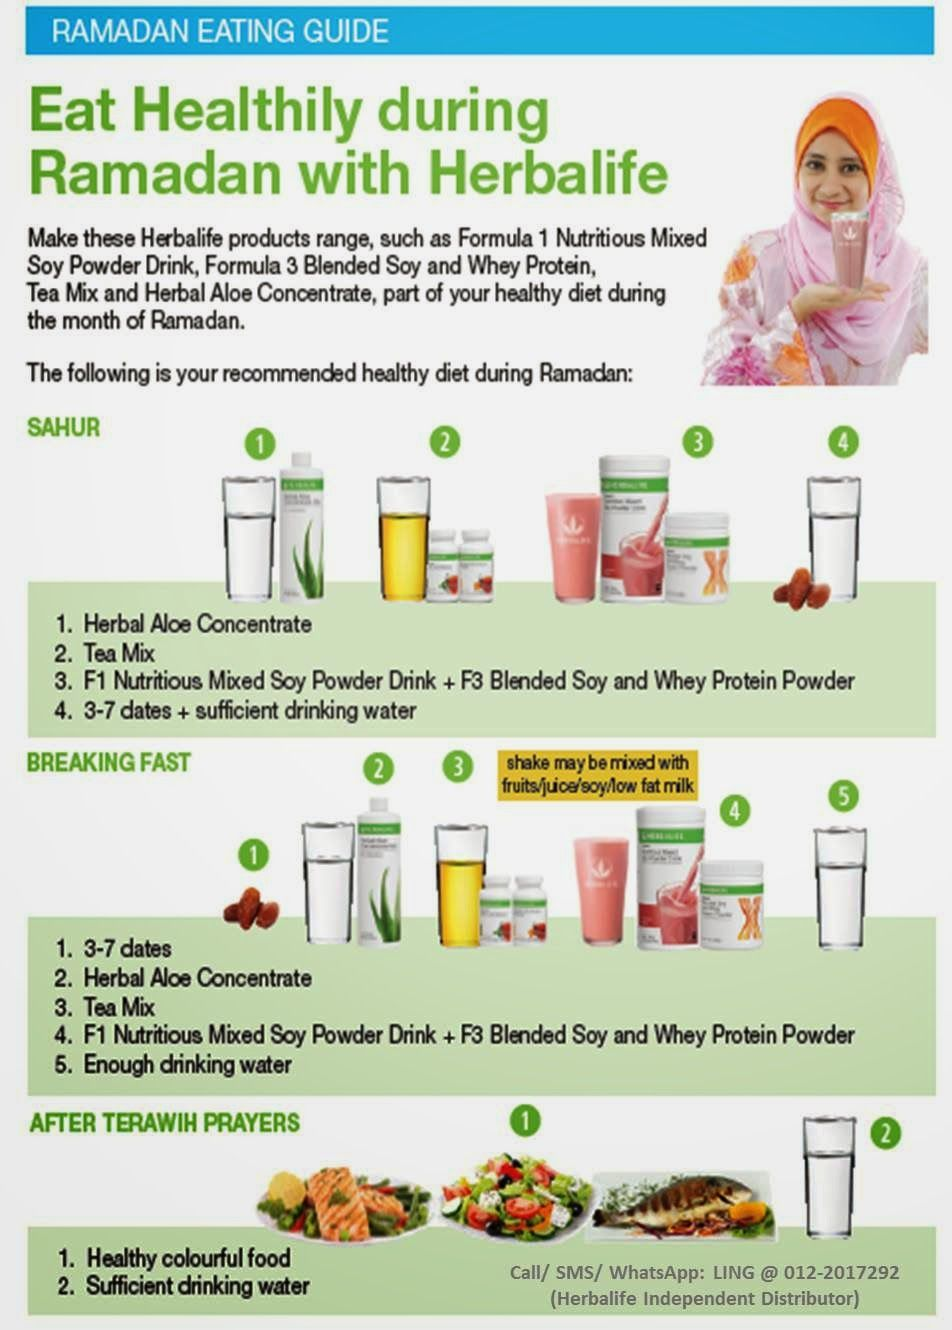 Herbalife Nutrition Ramadan Eating Guide Herbalife Independent Distributor Malaysia Ramadan Diet Herbalife Diet Herbalife Nutrition